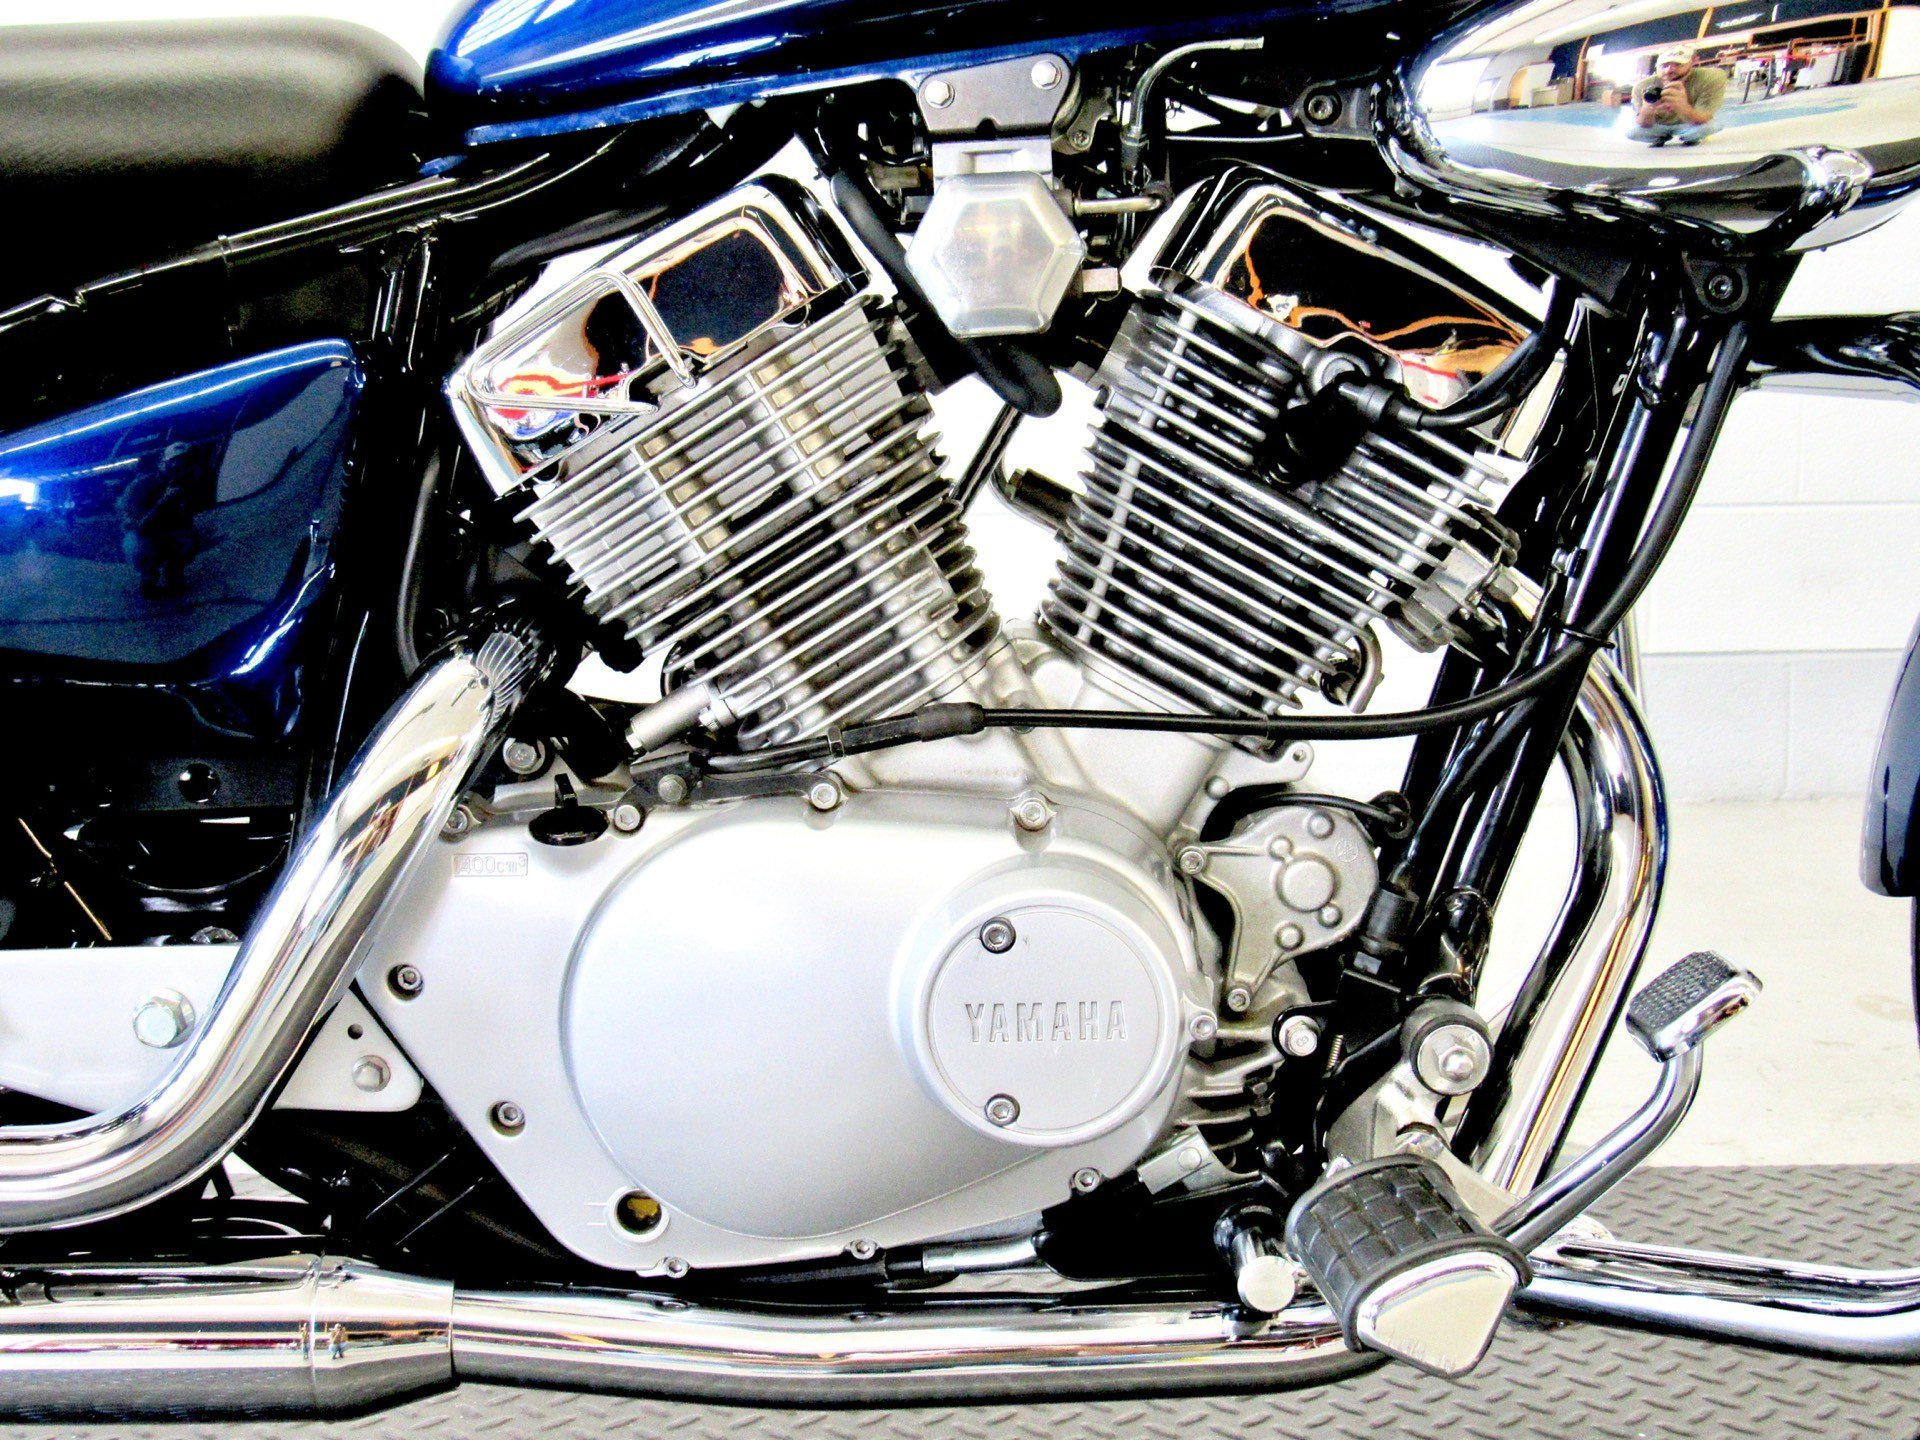 2013 Yamaha V Star 250 in Fredericksburg, Virginia - Photo 14